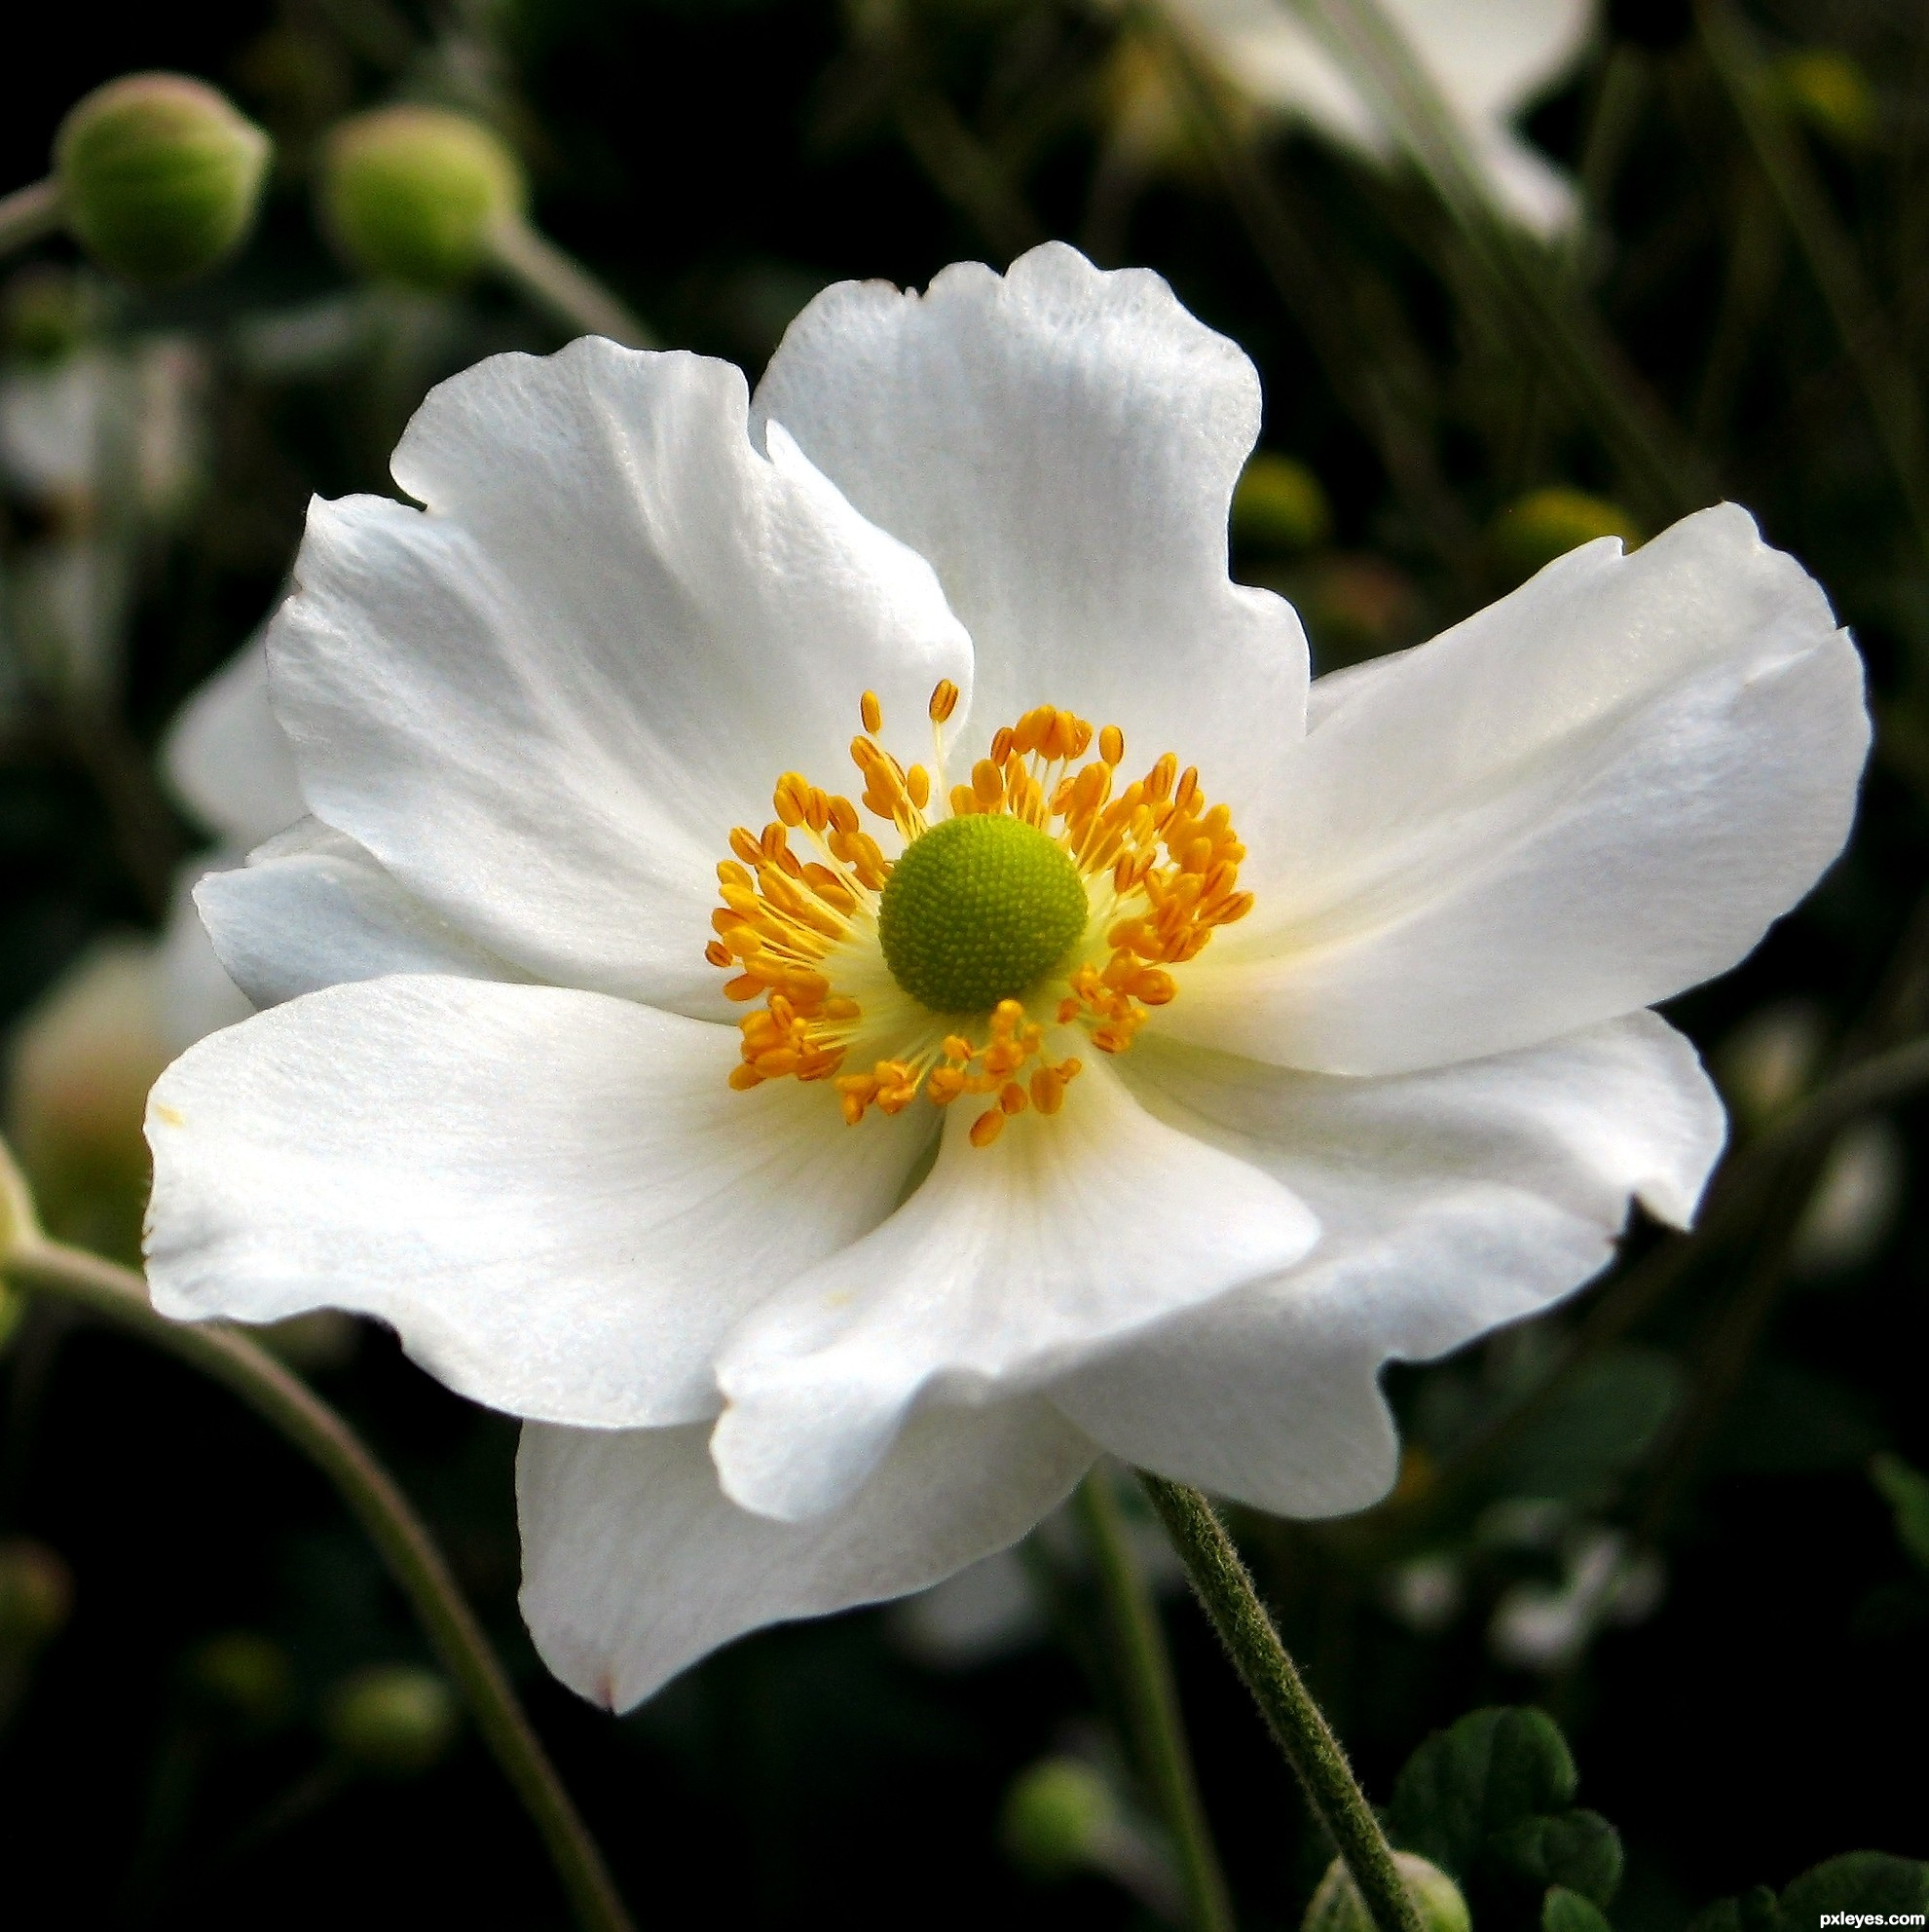 Japanese Anemone picture by jeaniblog for flower closeup 2 photography cont